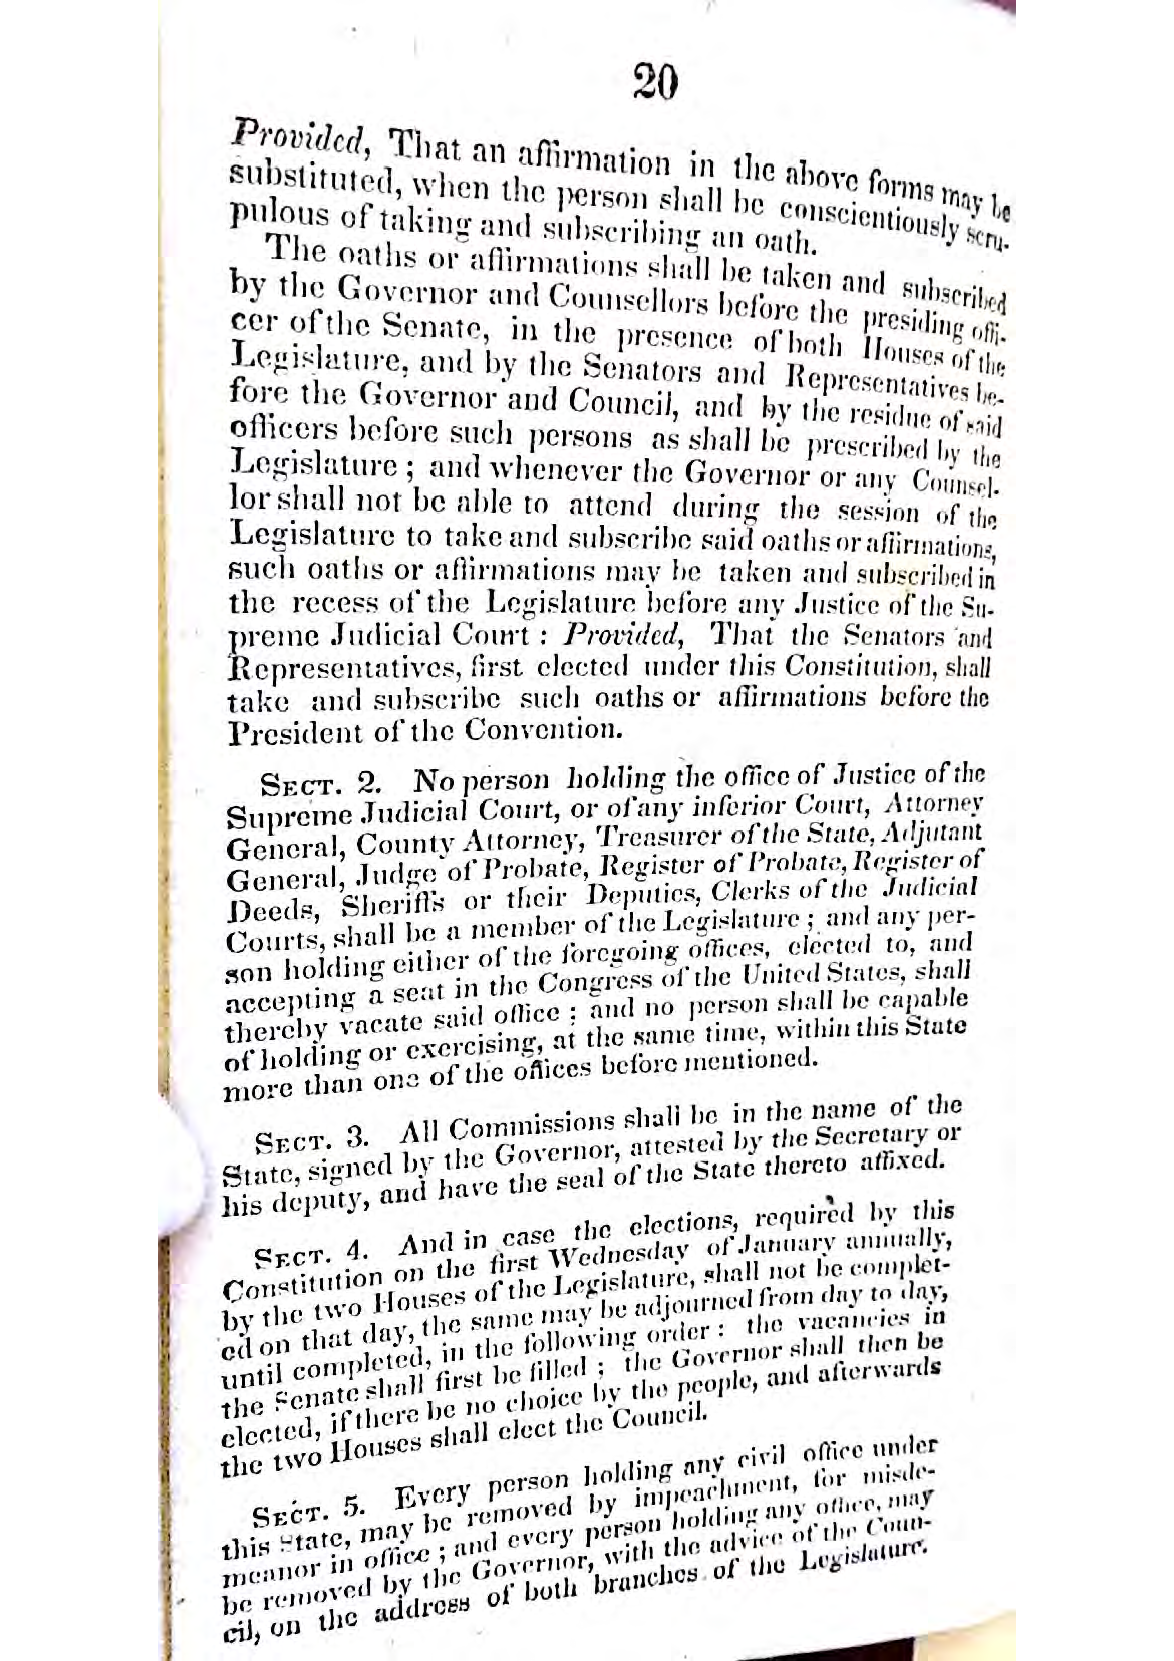 the significance of government figures in american states Another government that issued bank notes in america during the 19th century was the confederate states of america about a month before the beginning of hostilities at fort sumter, the confederate secretary of the treasury, cg memminger, ordered bank notes for the new government from the national bank note company in new york city.